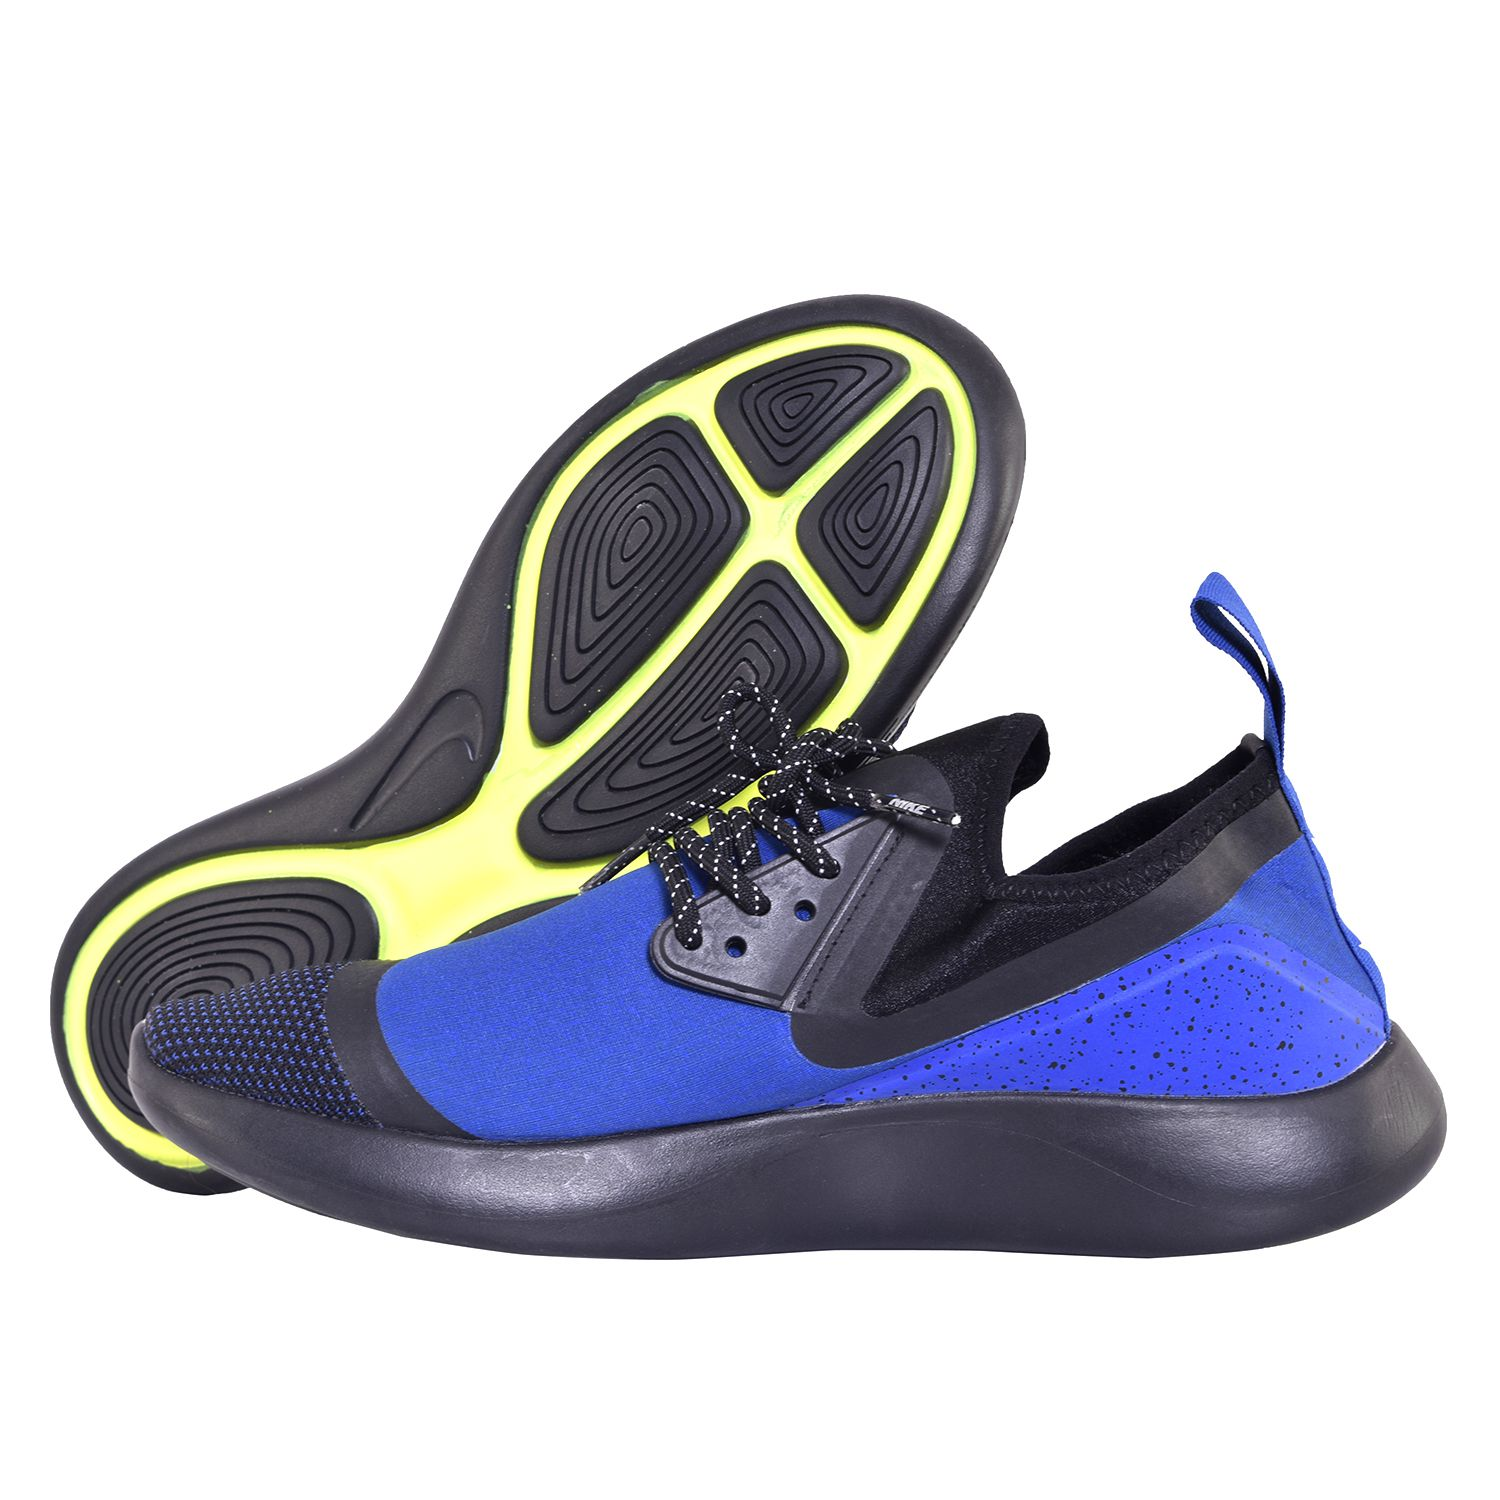 611f72fd4a Nike Lunarcharge Essential Blue Running Shoes - Buy Nike Lunarcharge  Essential Blue Running Shoes Online at Best Prices in India on Snapdeal